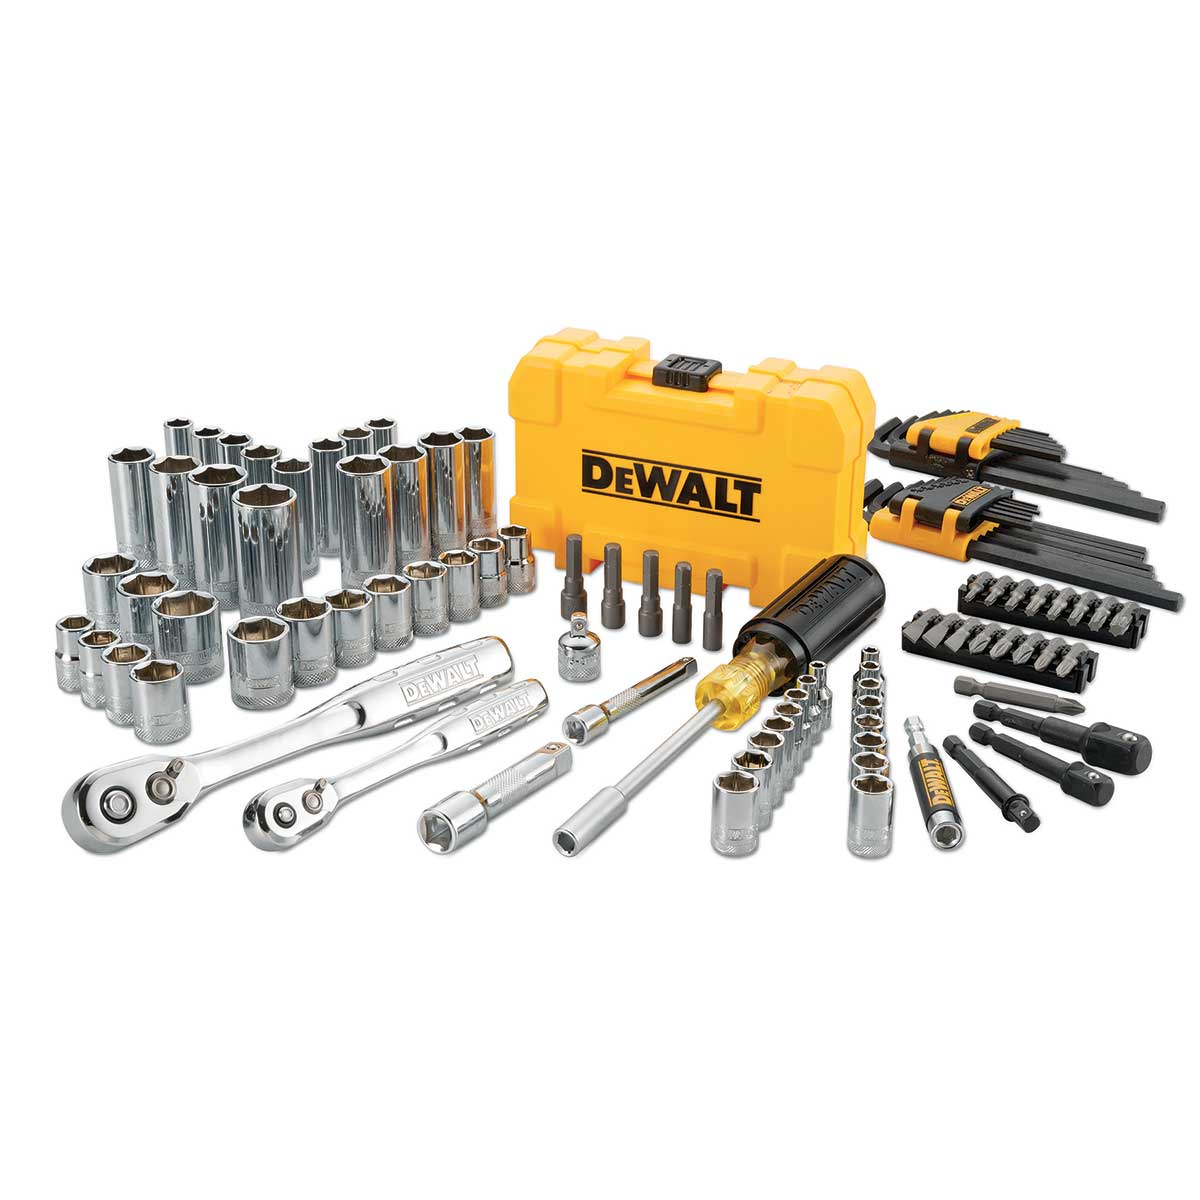 DeWalt Mechanic's Tool Kit, 108 Piece Set, with PTA Case